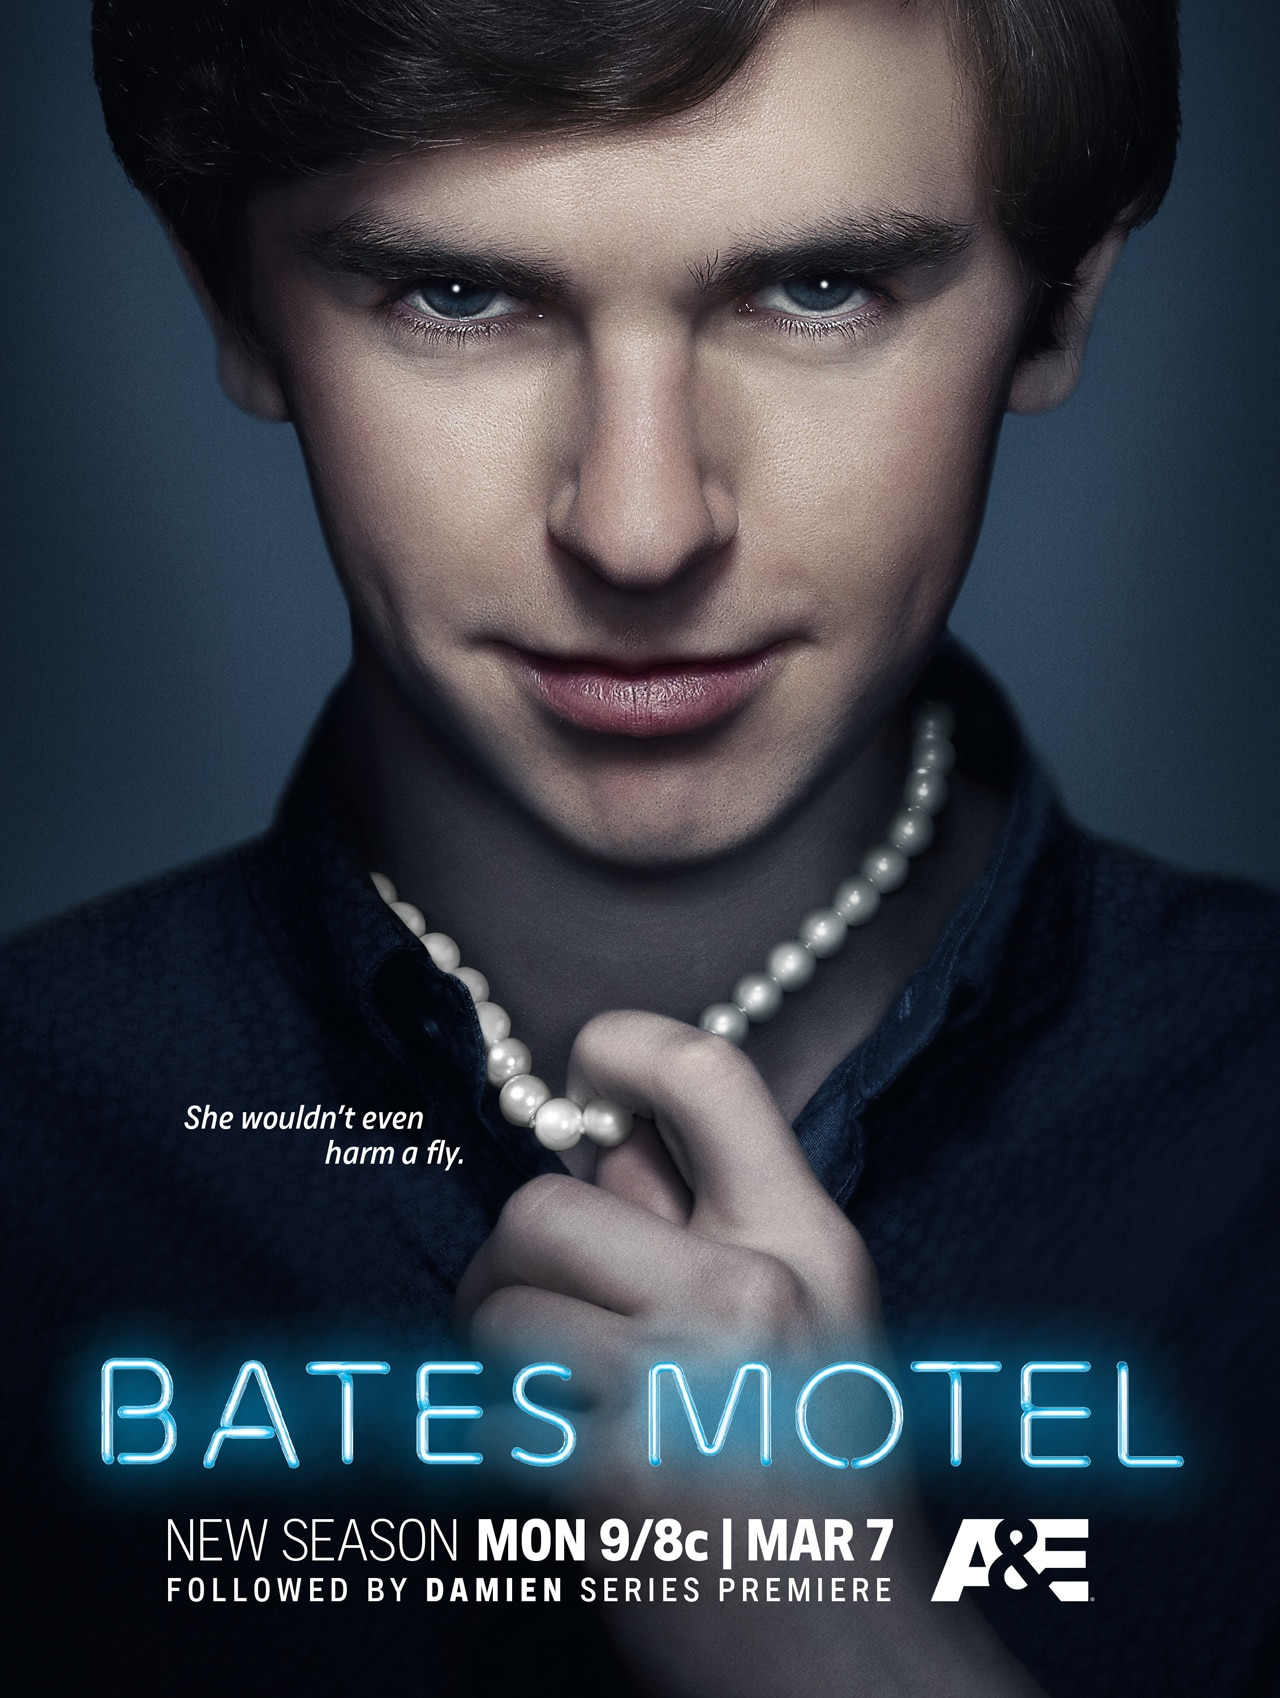 batesmotel-season4artwork